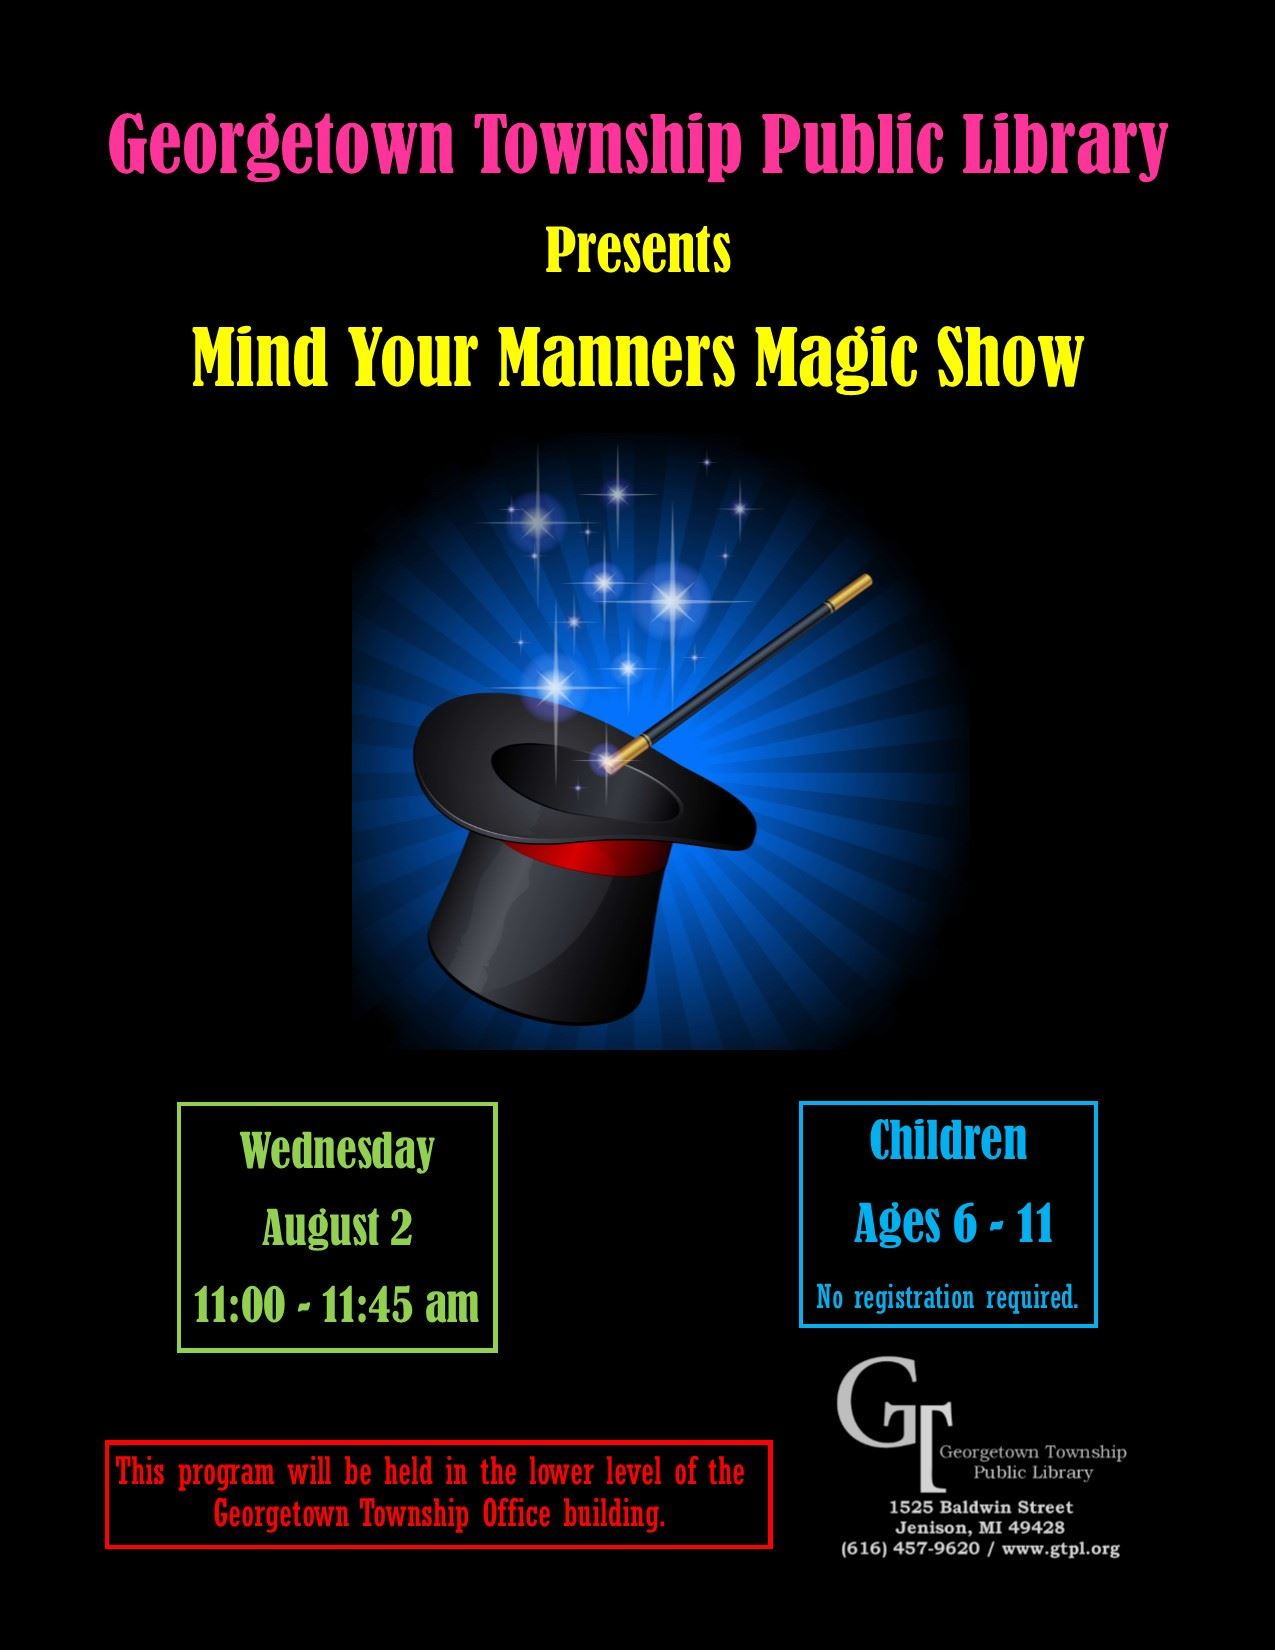 Mind Your Manners Magic Show 08.02.17